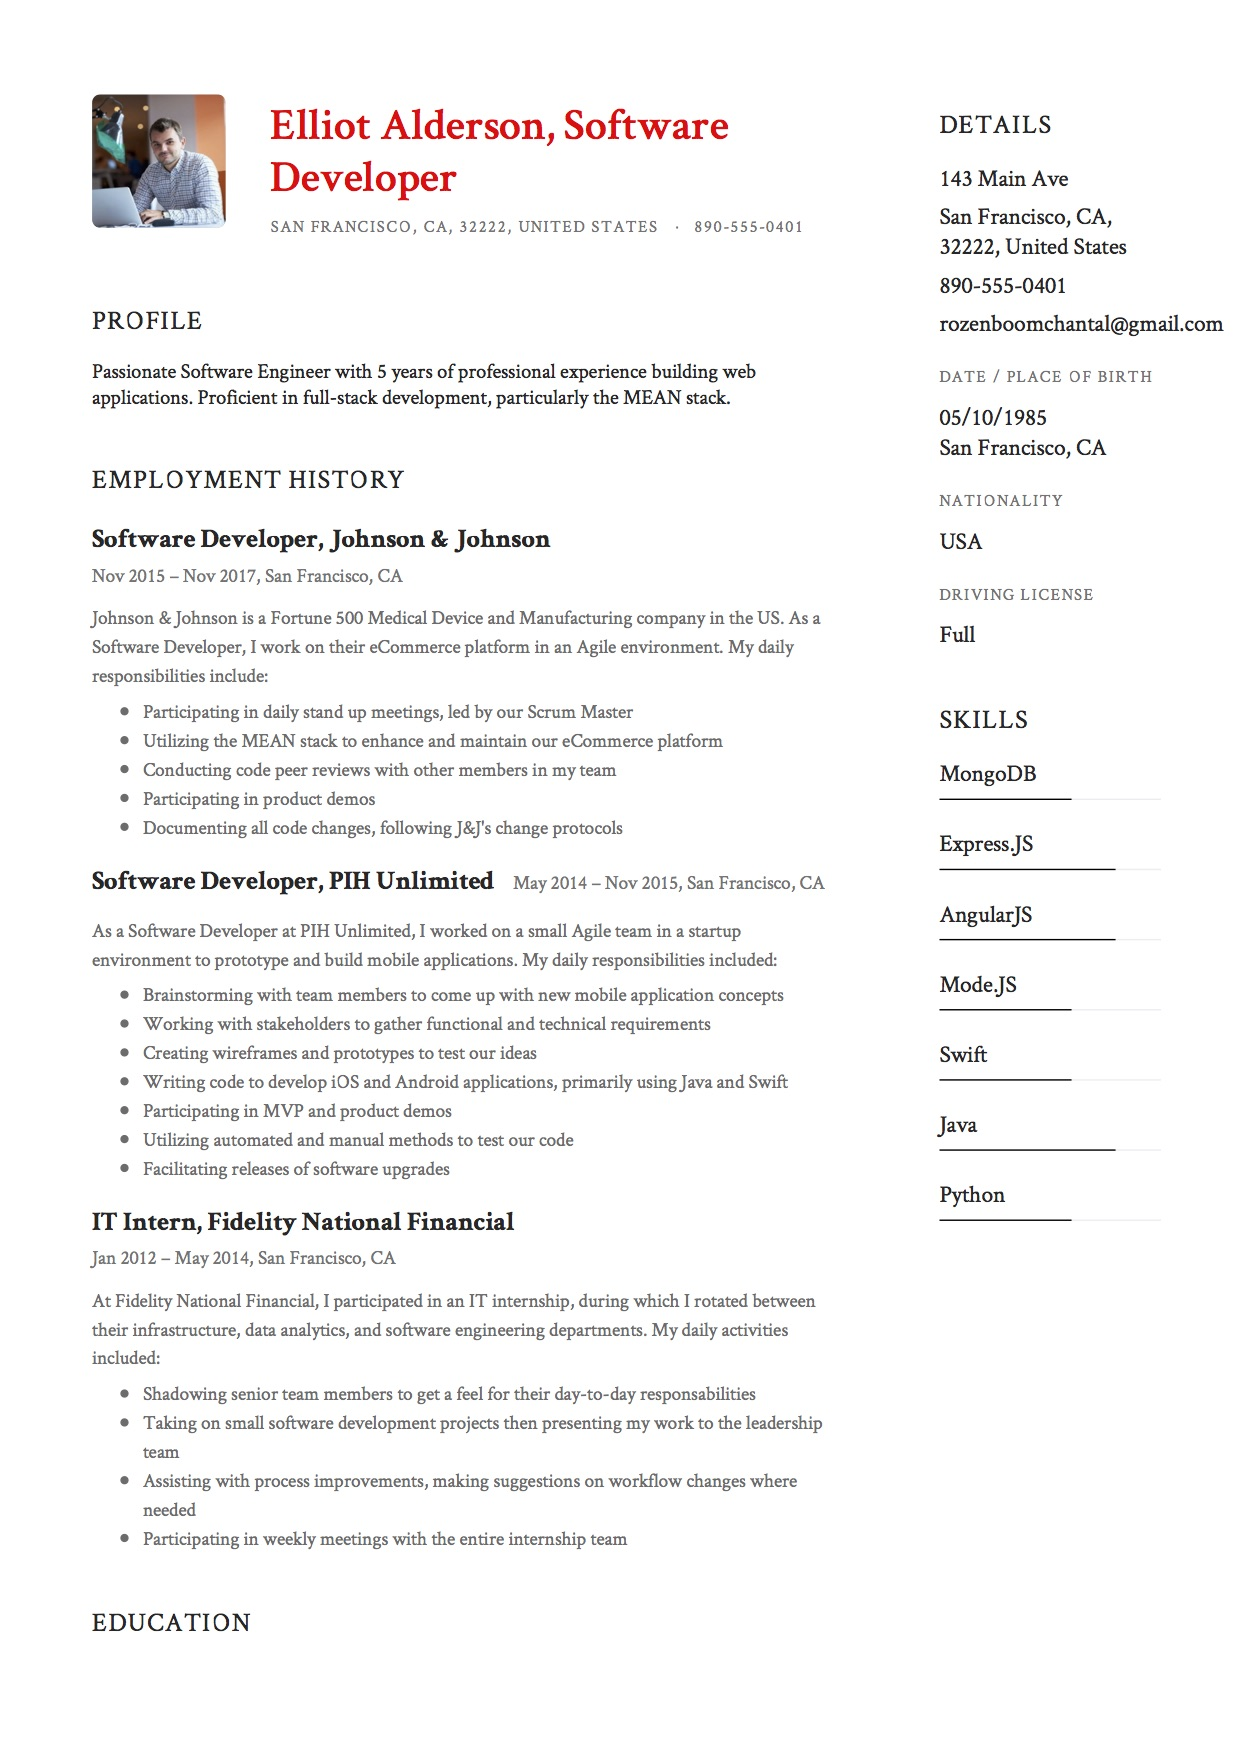 Resume Example Software Developer (5)